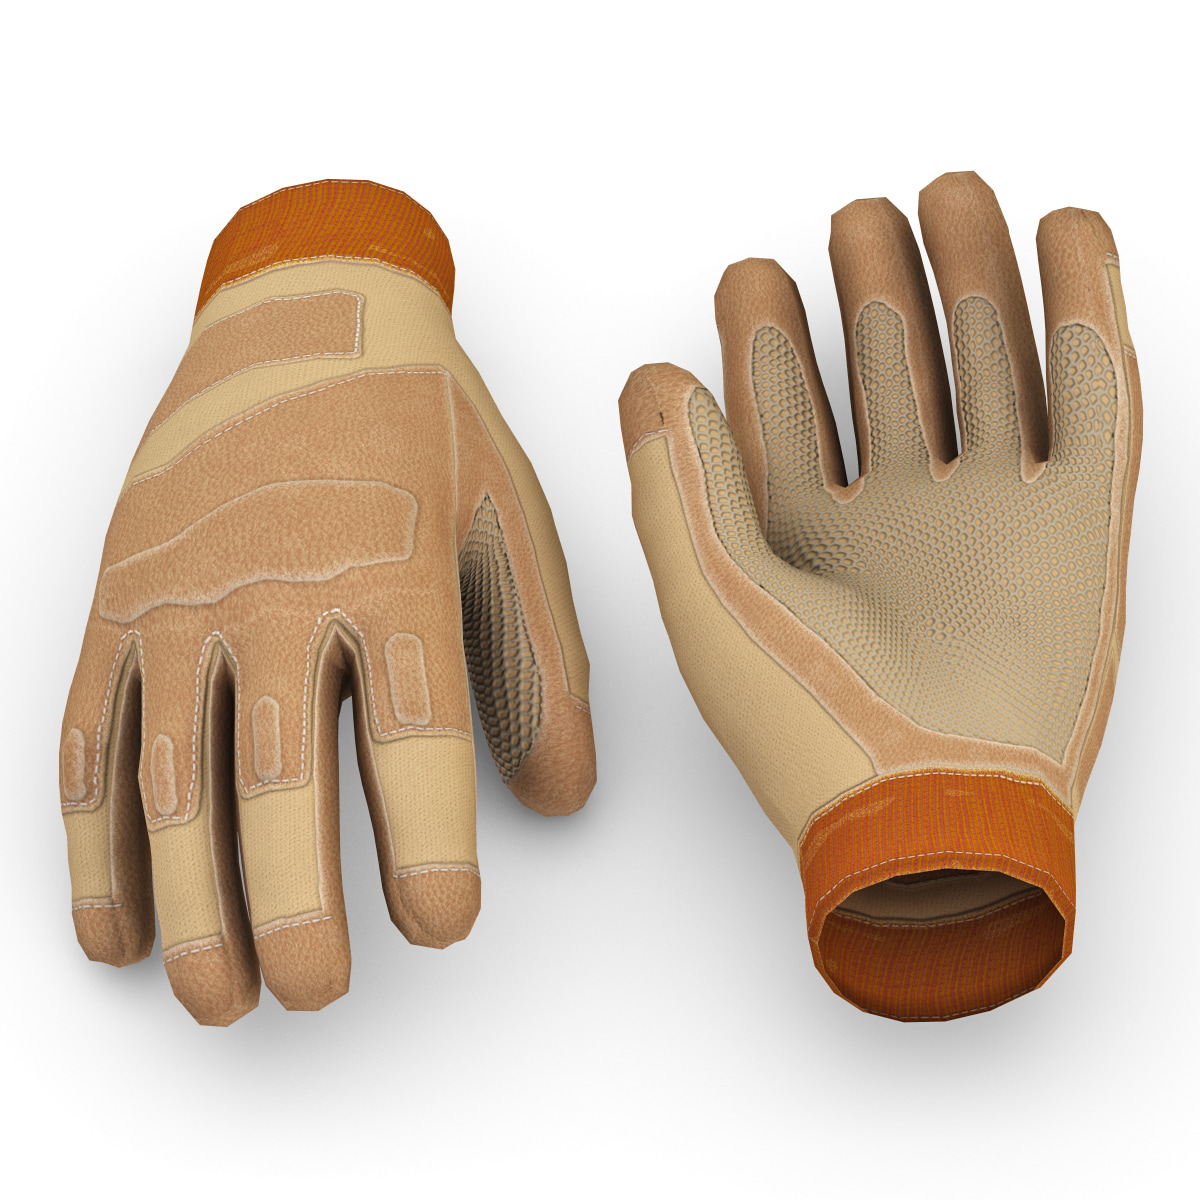 Soldier_Gloves_V2_001.jpg